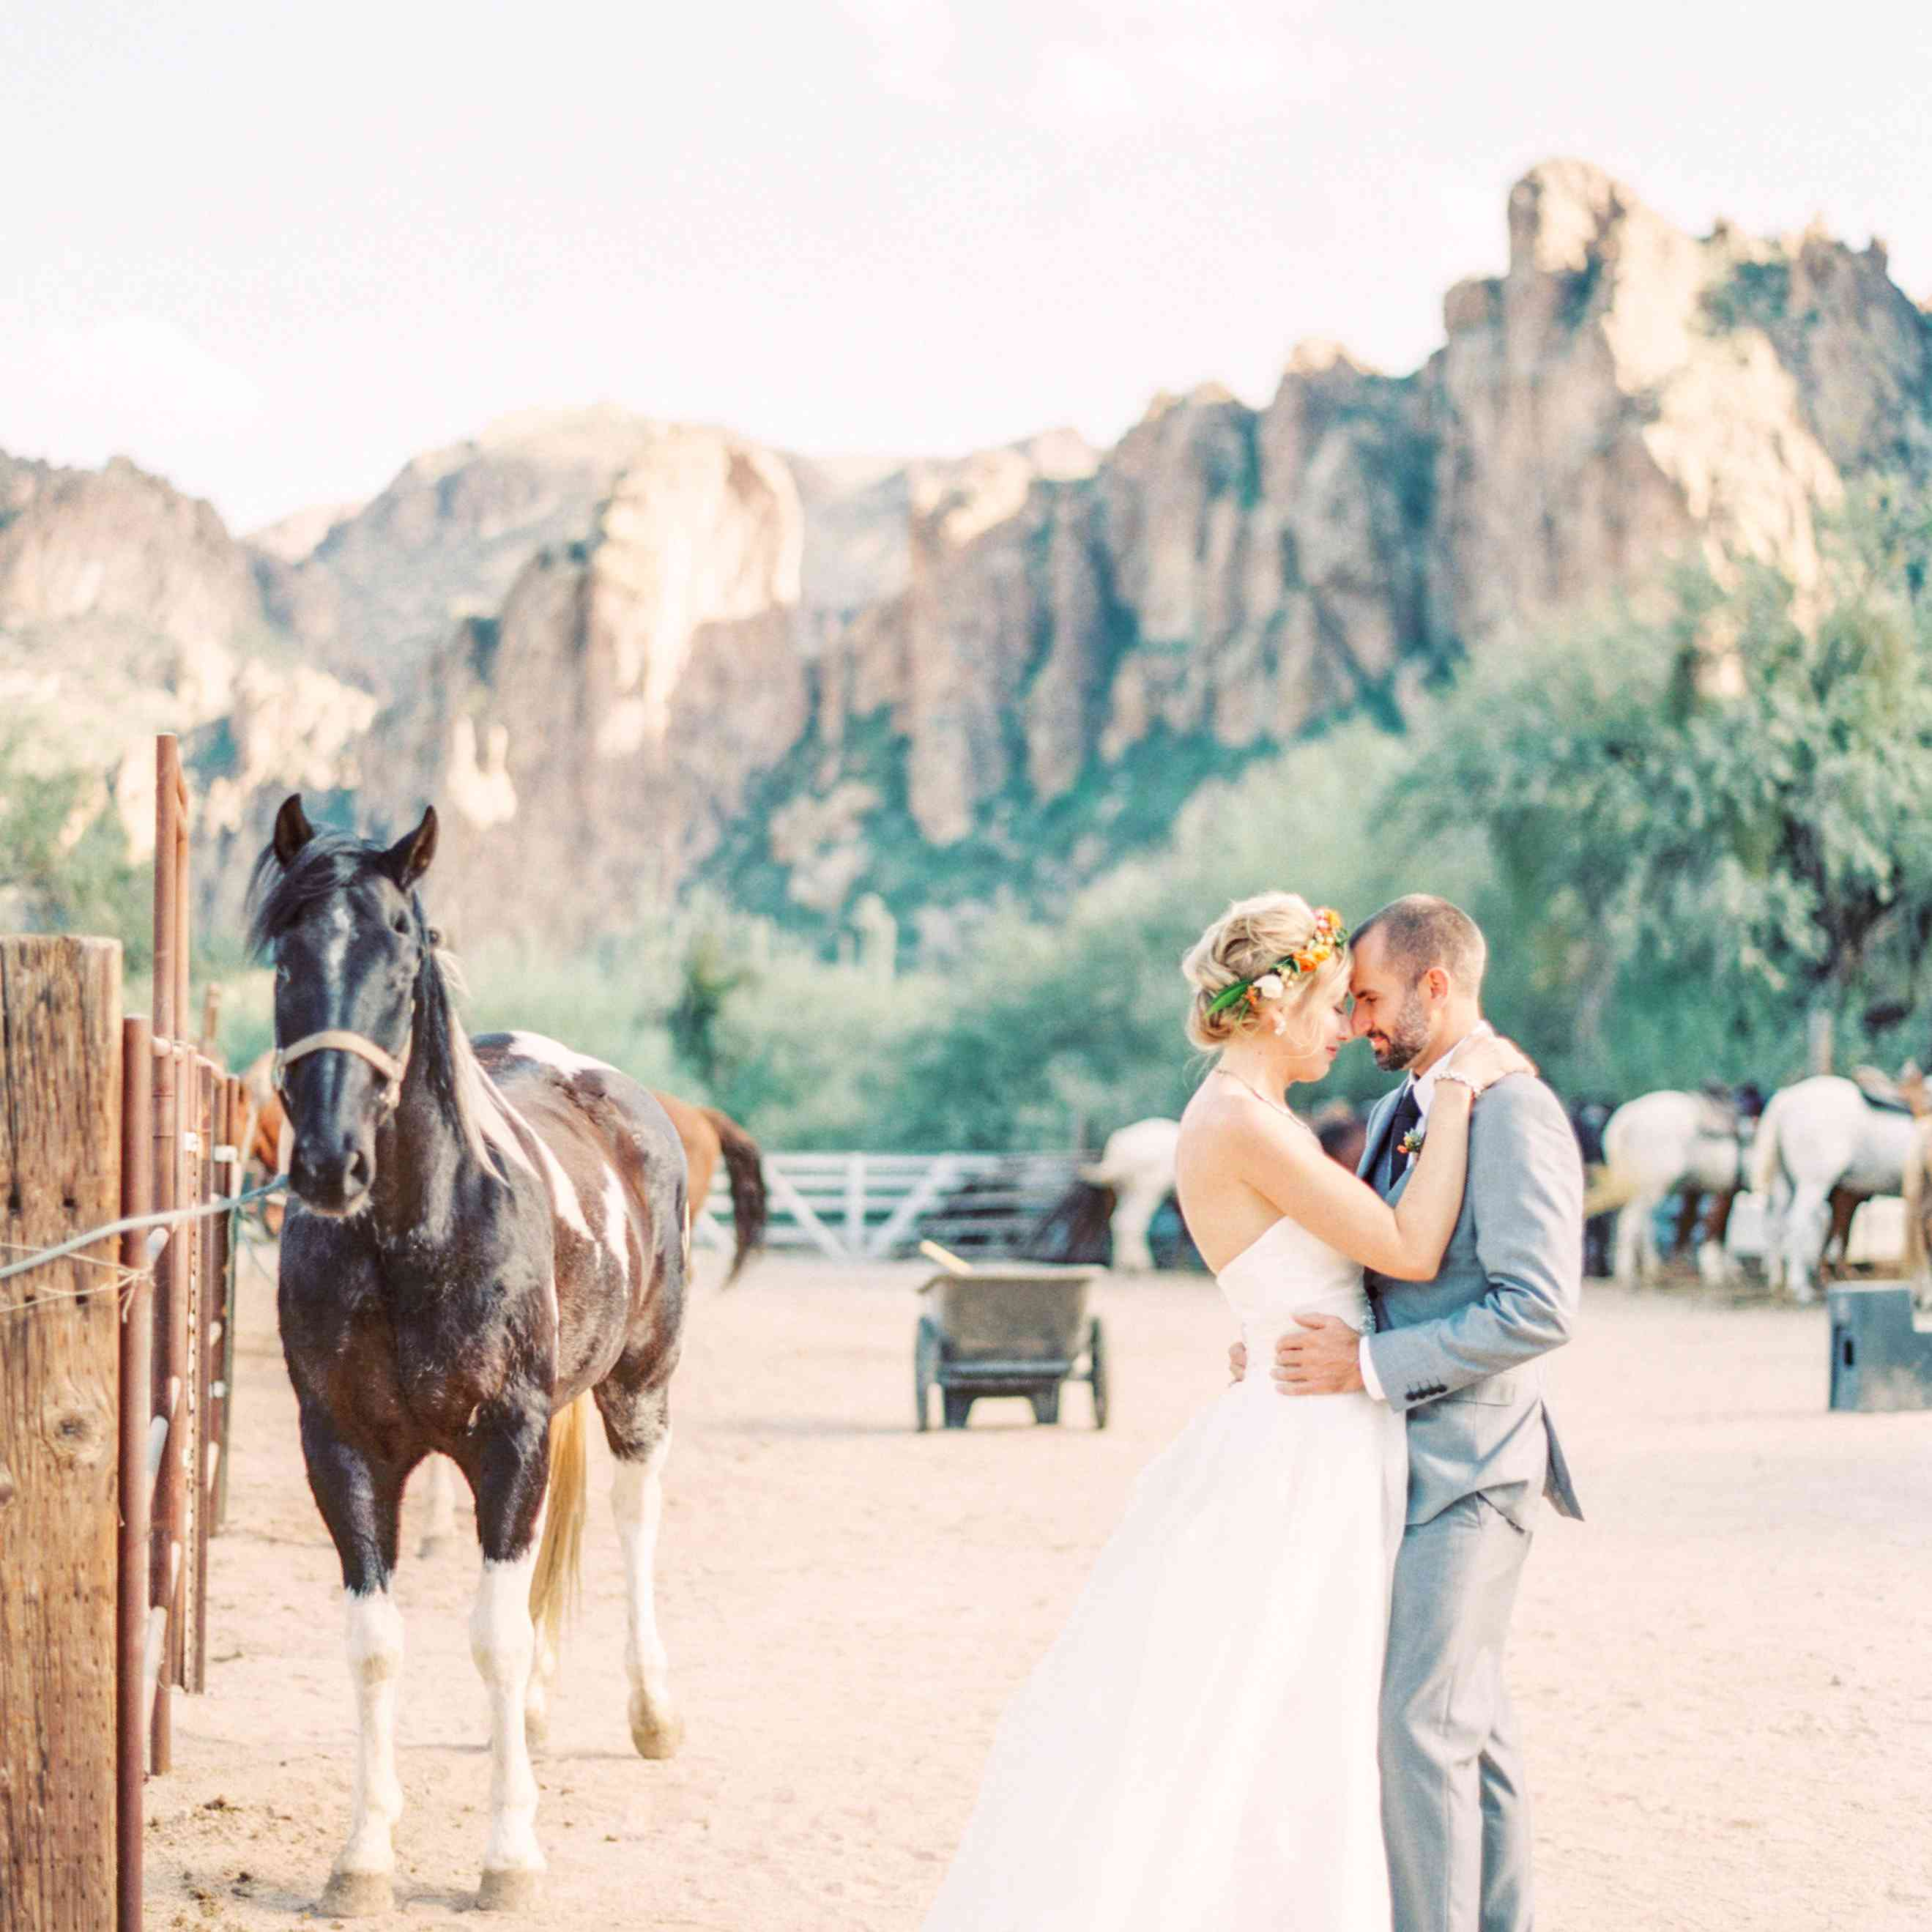 Couple posing with horse and mountains in the background